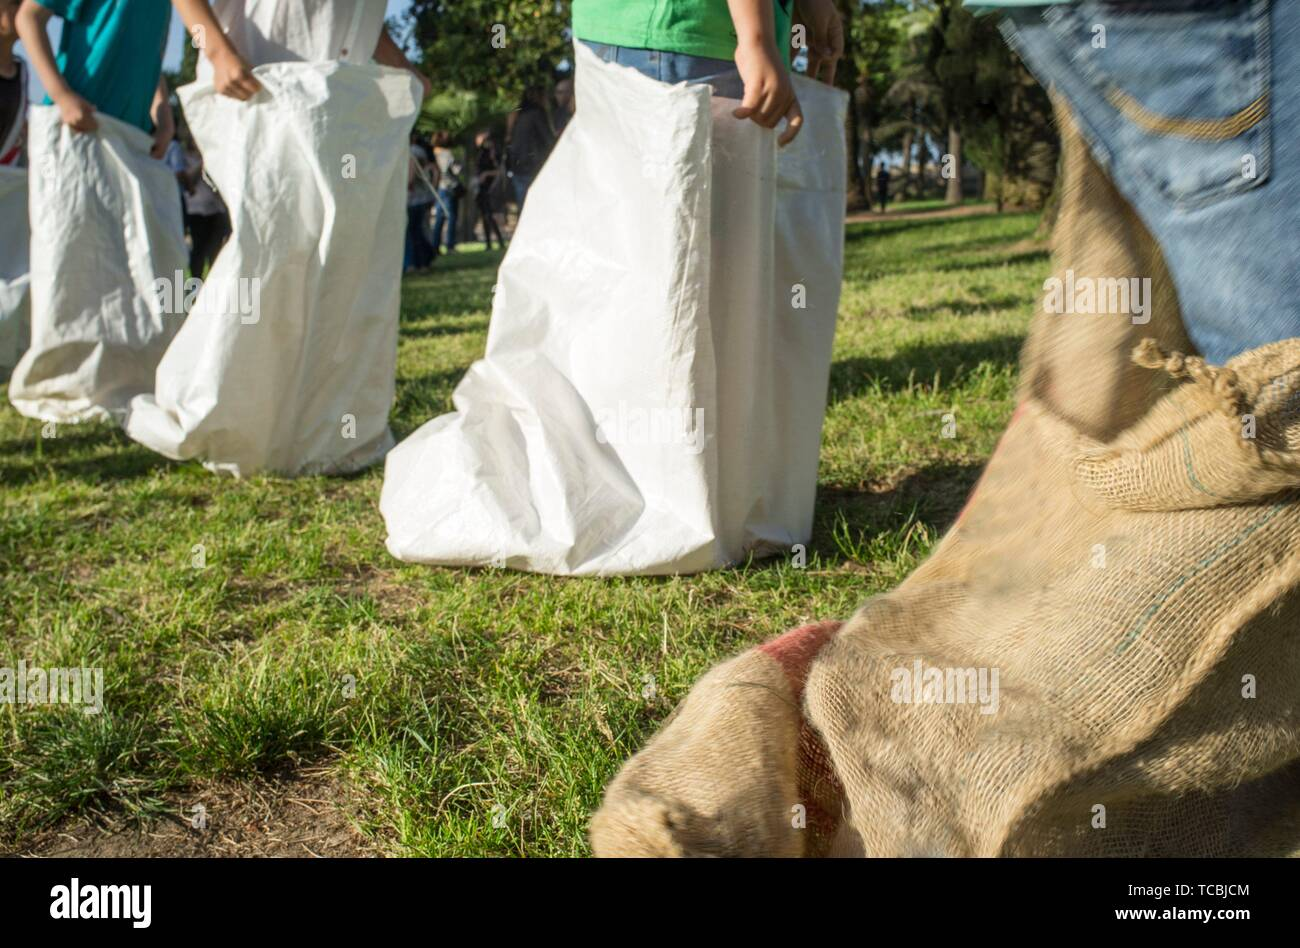 Children having a sack race in the park. Classic games concept. Motion blurred. - Stock Image